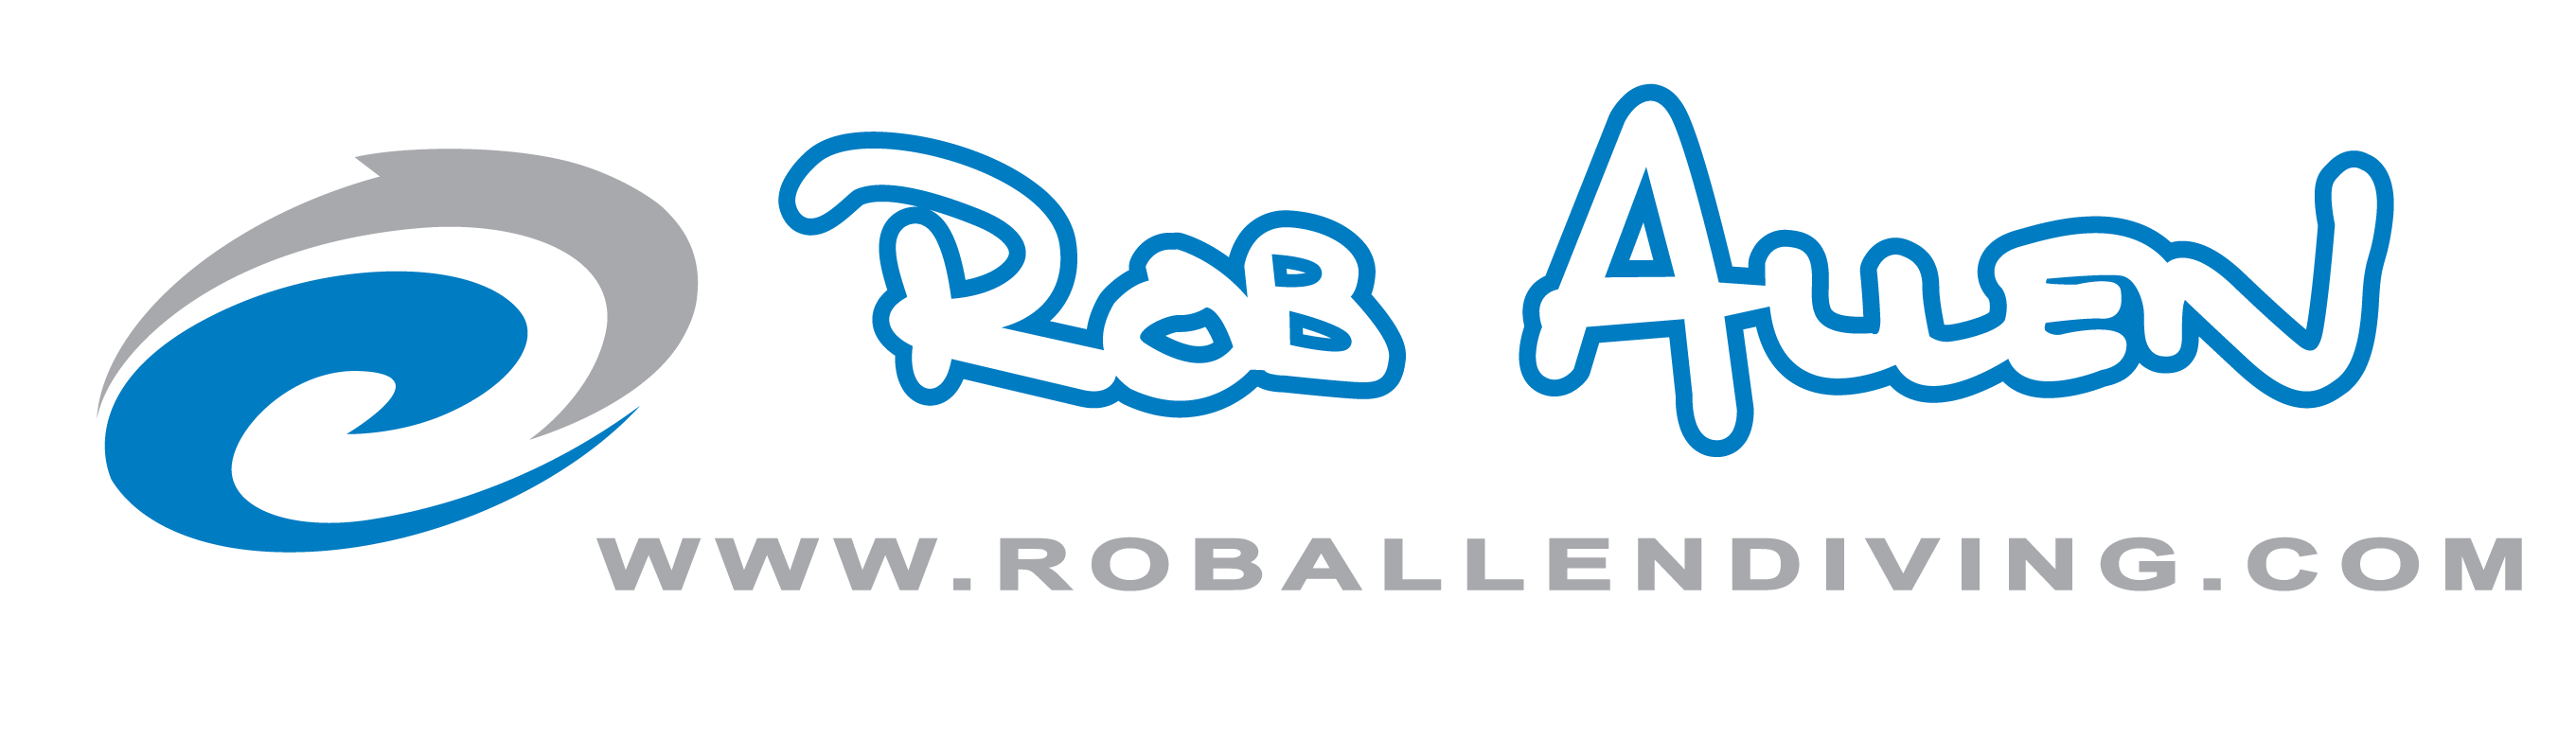 ROB ALLEN Diving LOGO B